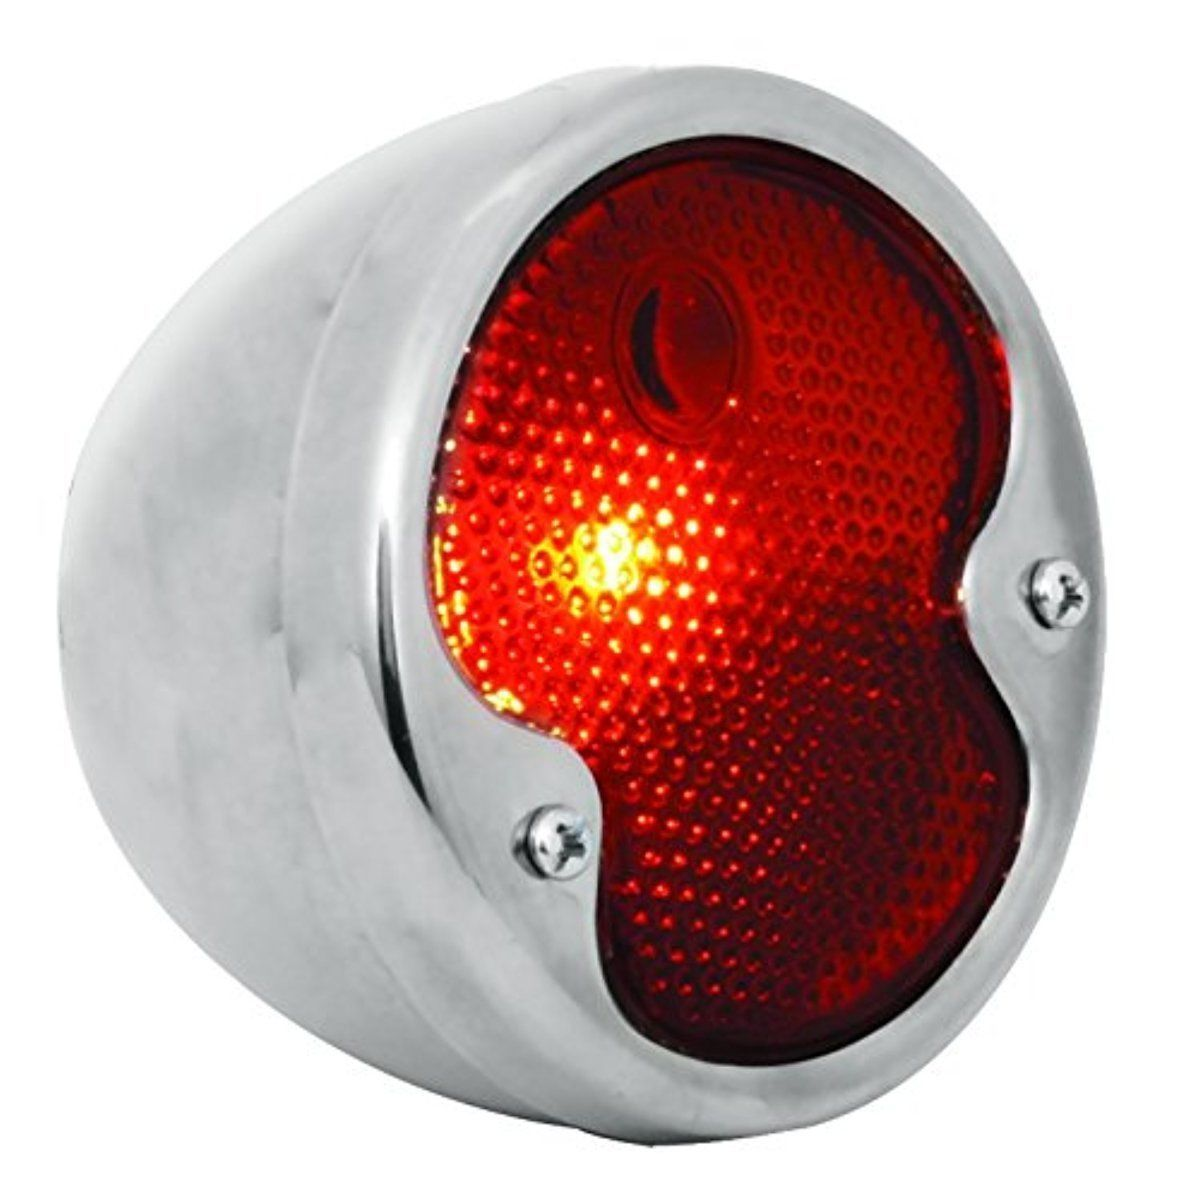 KNS Accessories KA0035 12V Stainless Steel Duolamp Tail Light for Ford Model A with Red Glass Lens